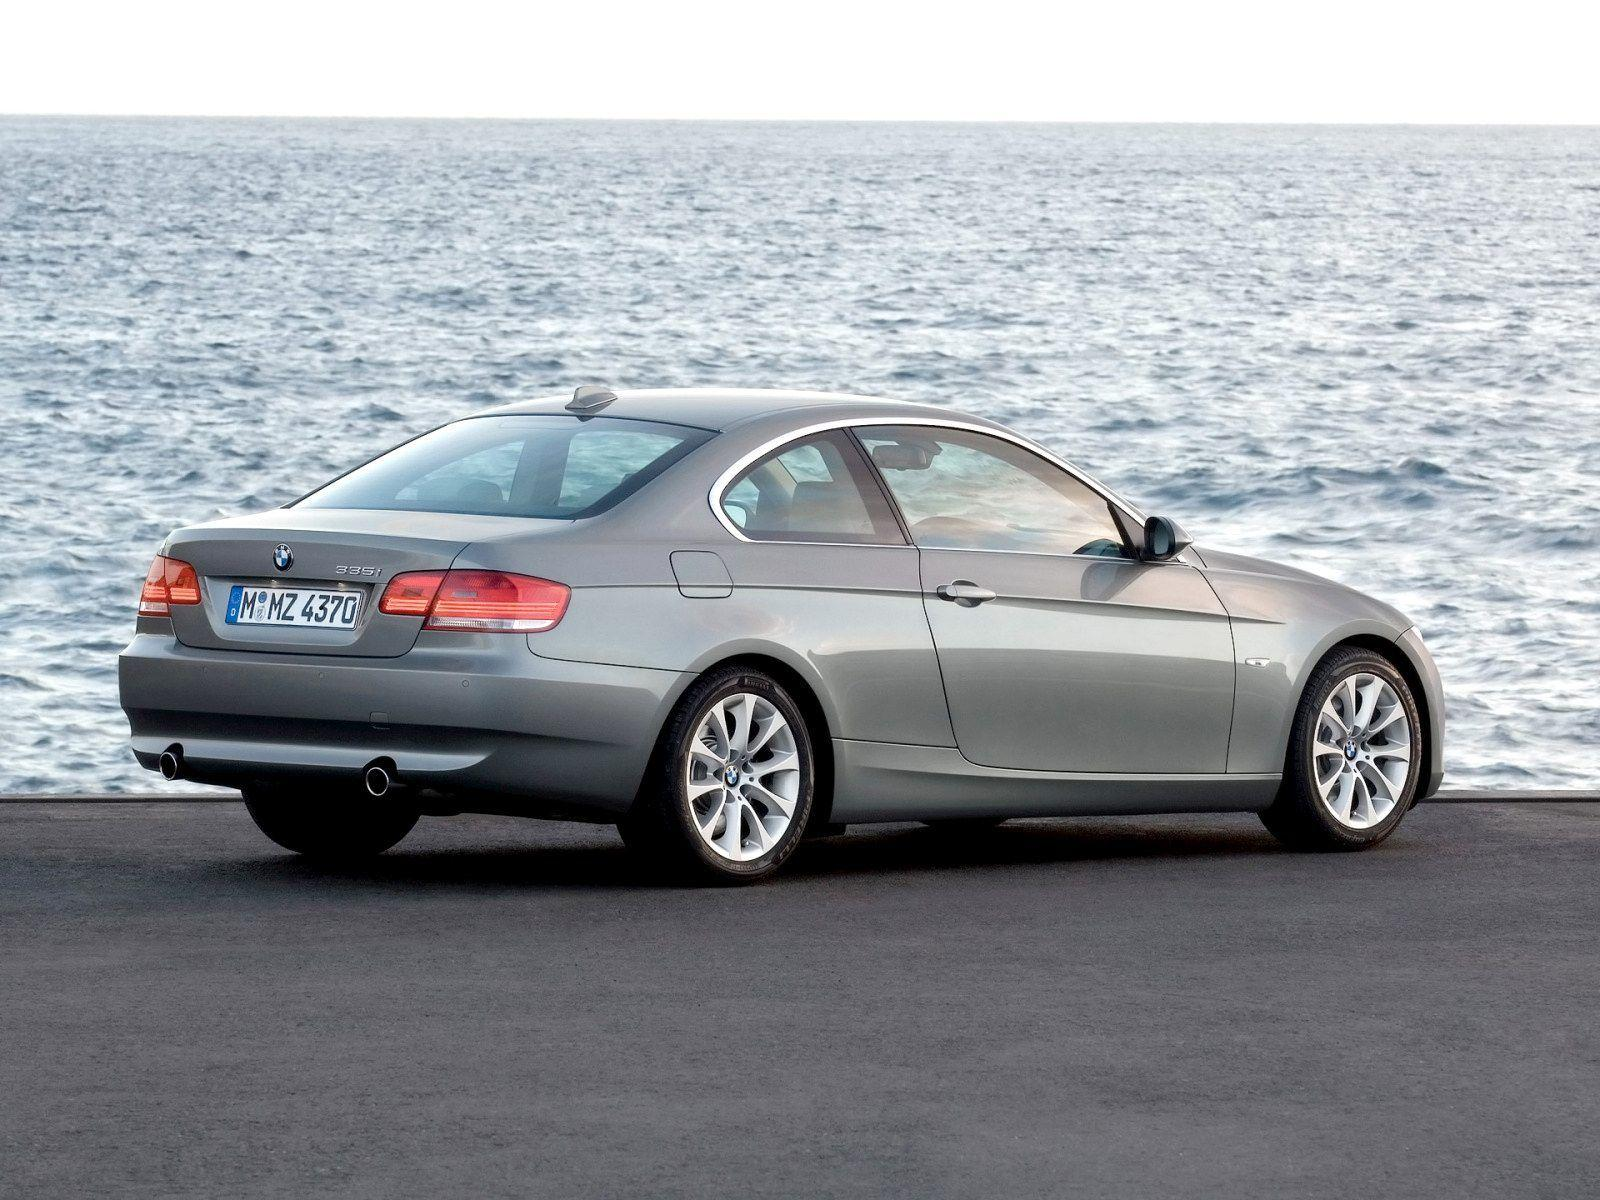 2007 BMW 335i Coupe Wallpaper 06 - 1600x1200